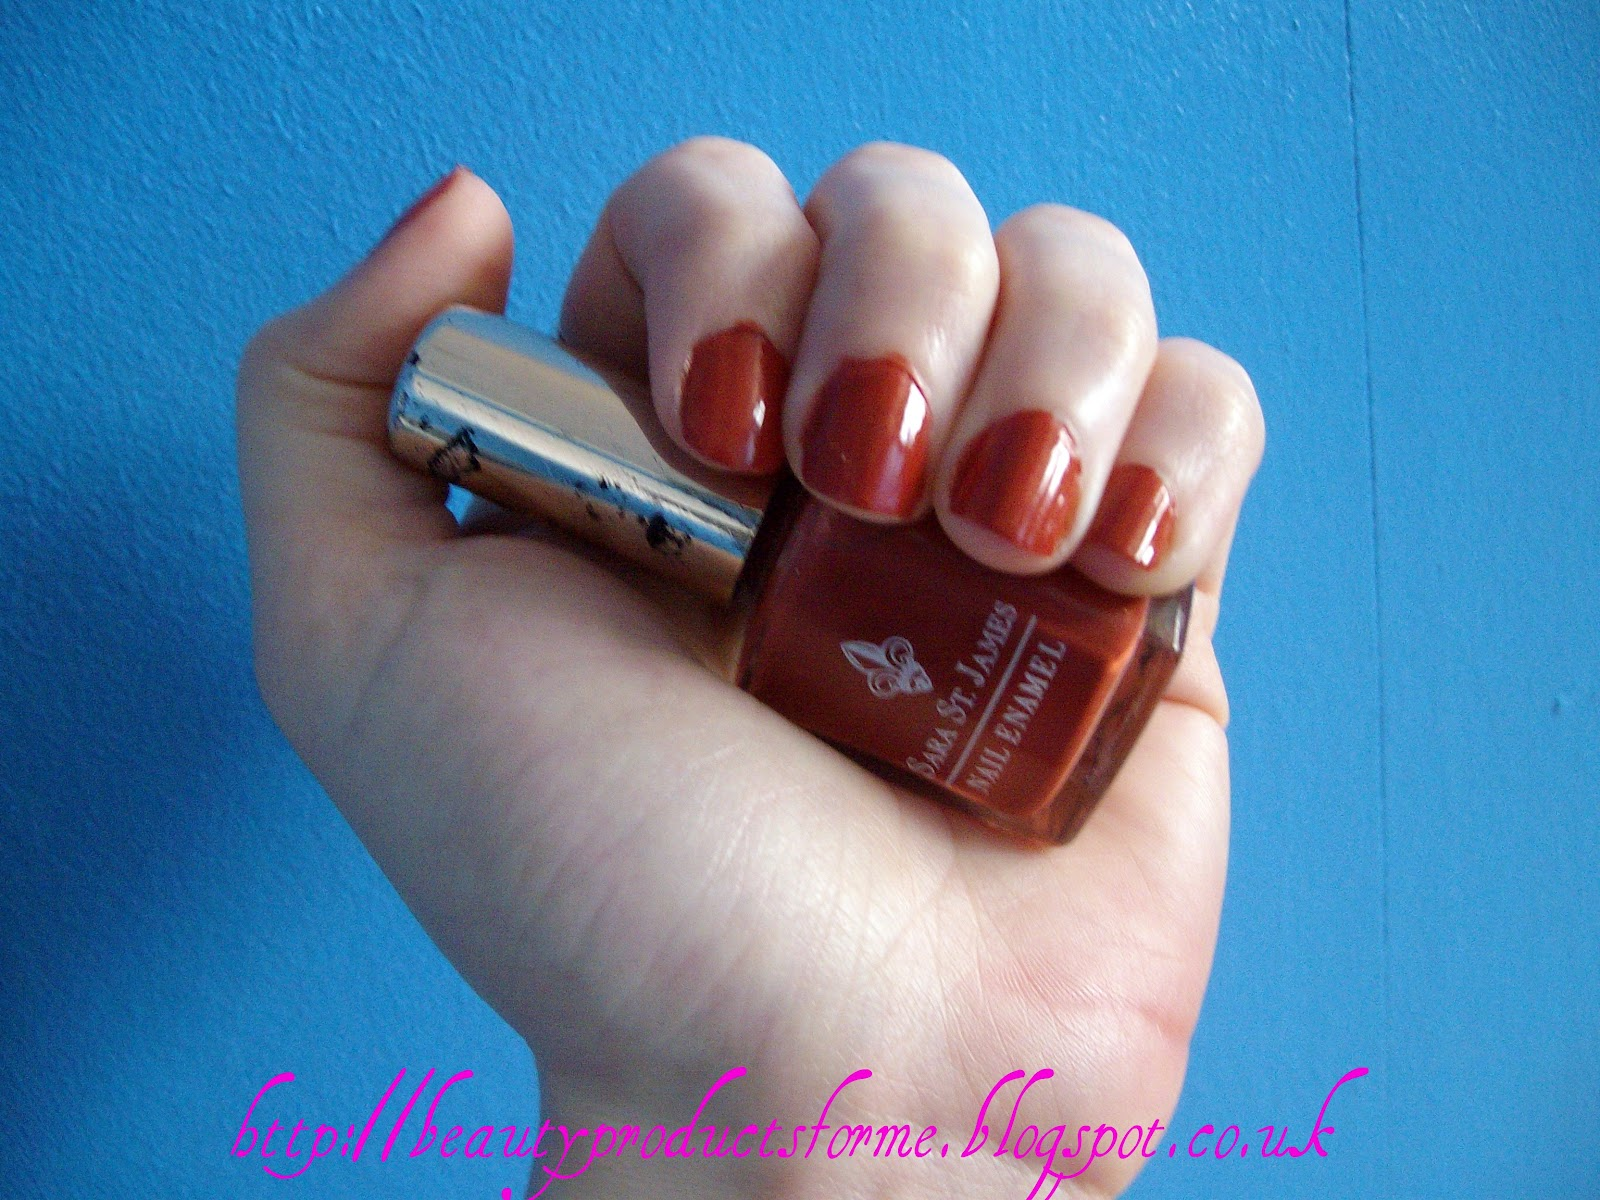 NOTD: Sara St James Cinnamon Nail Polish